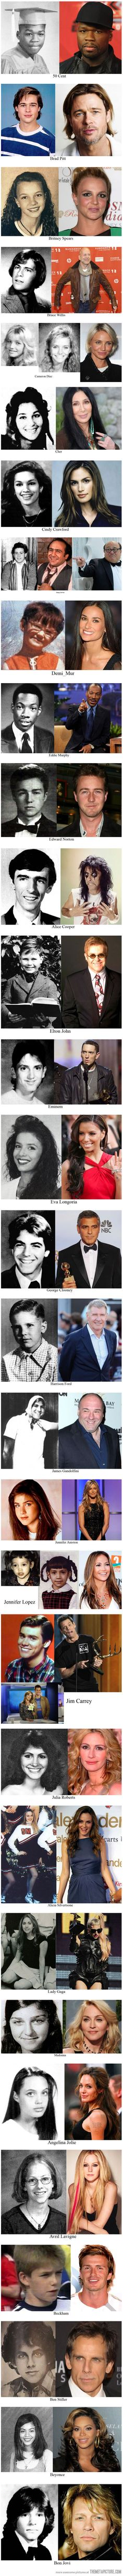 Celebrities now and then